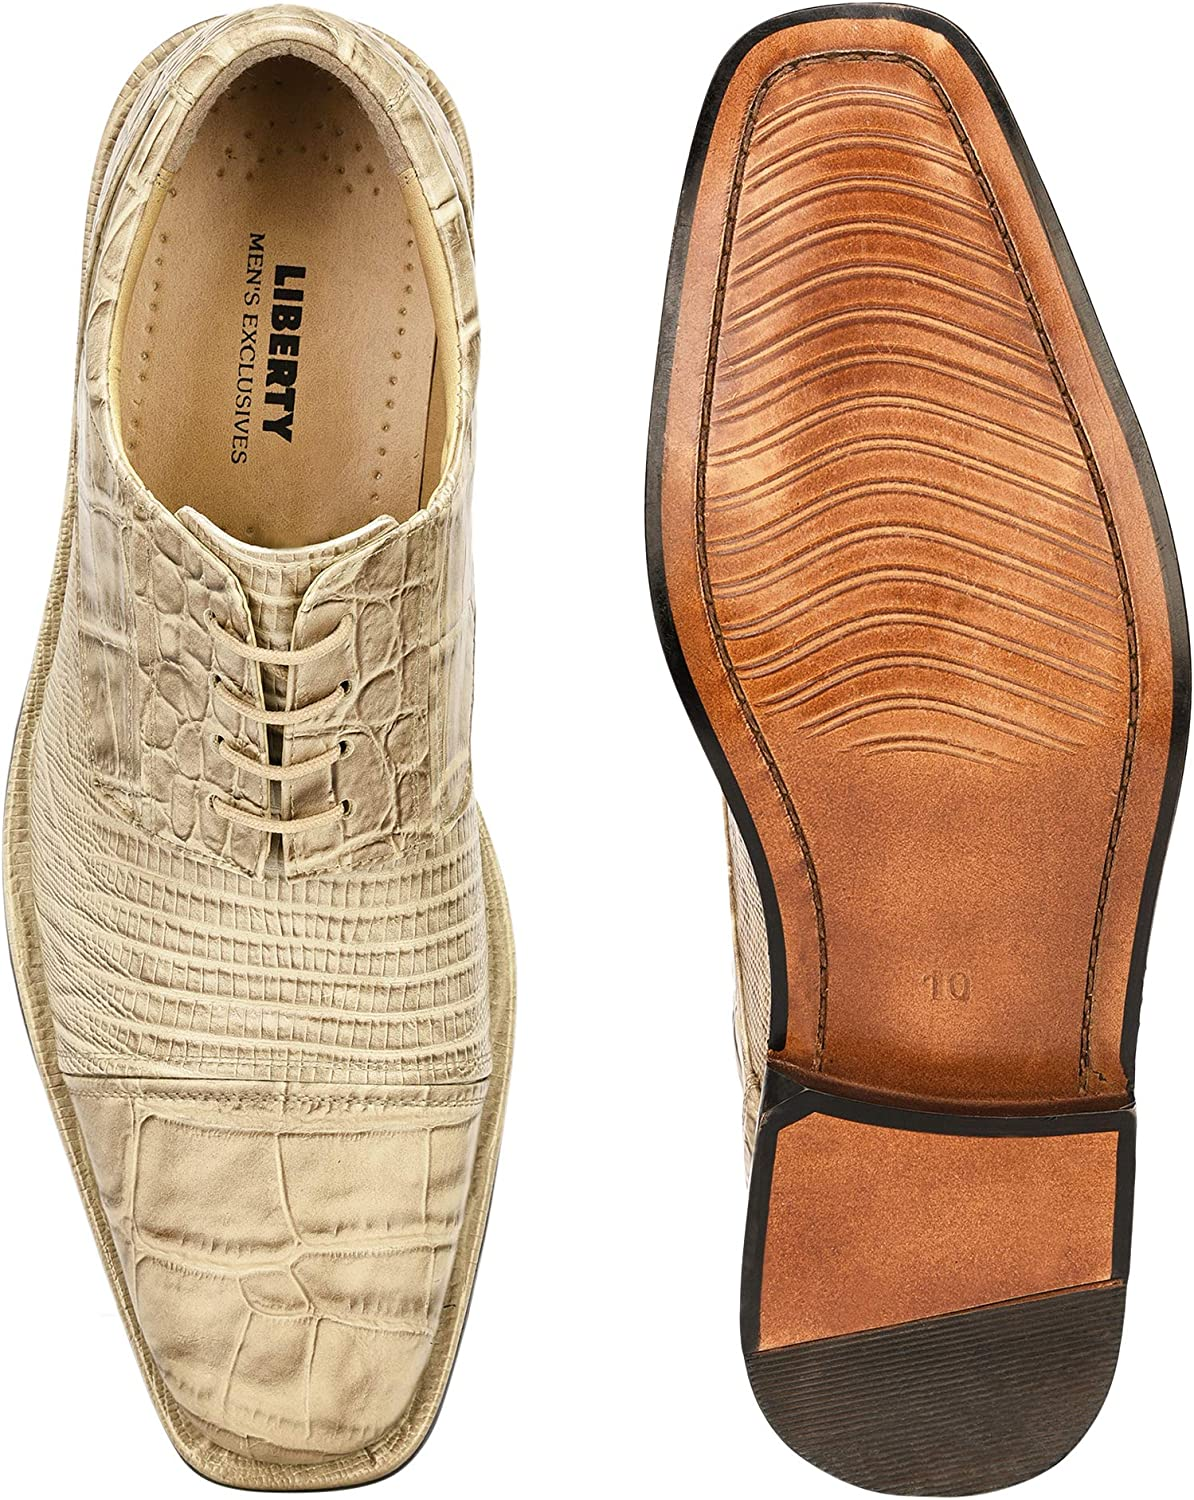 LIBERTYZENO Exotic Men's Crocodile/Lizard Print Oxford Hand-Picked Manmade Leather Lace up Dress Shoes Exclusive Collection